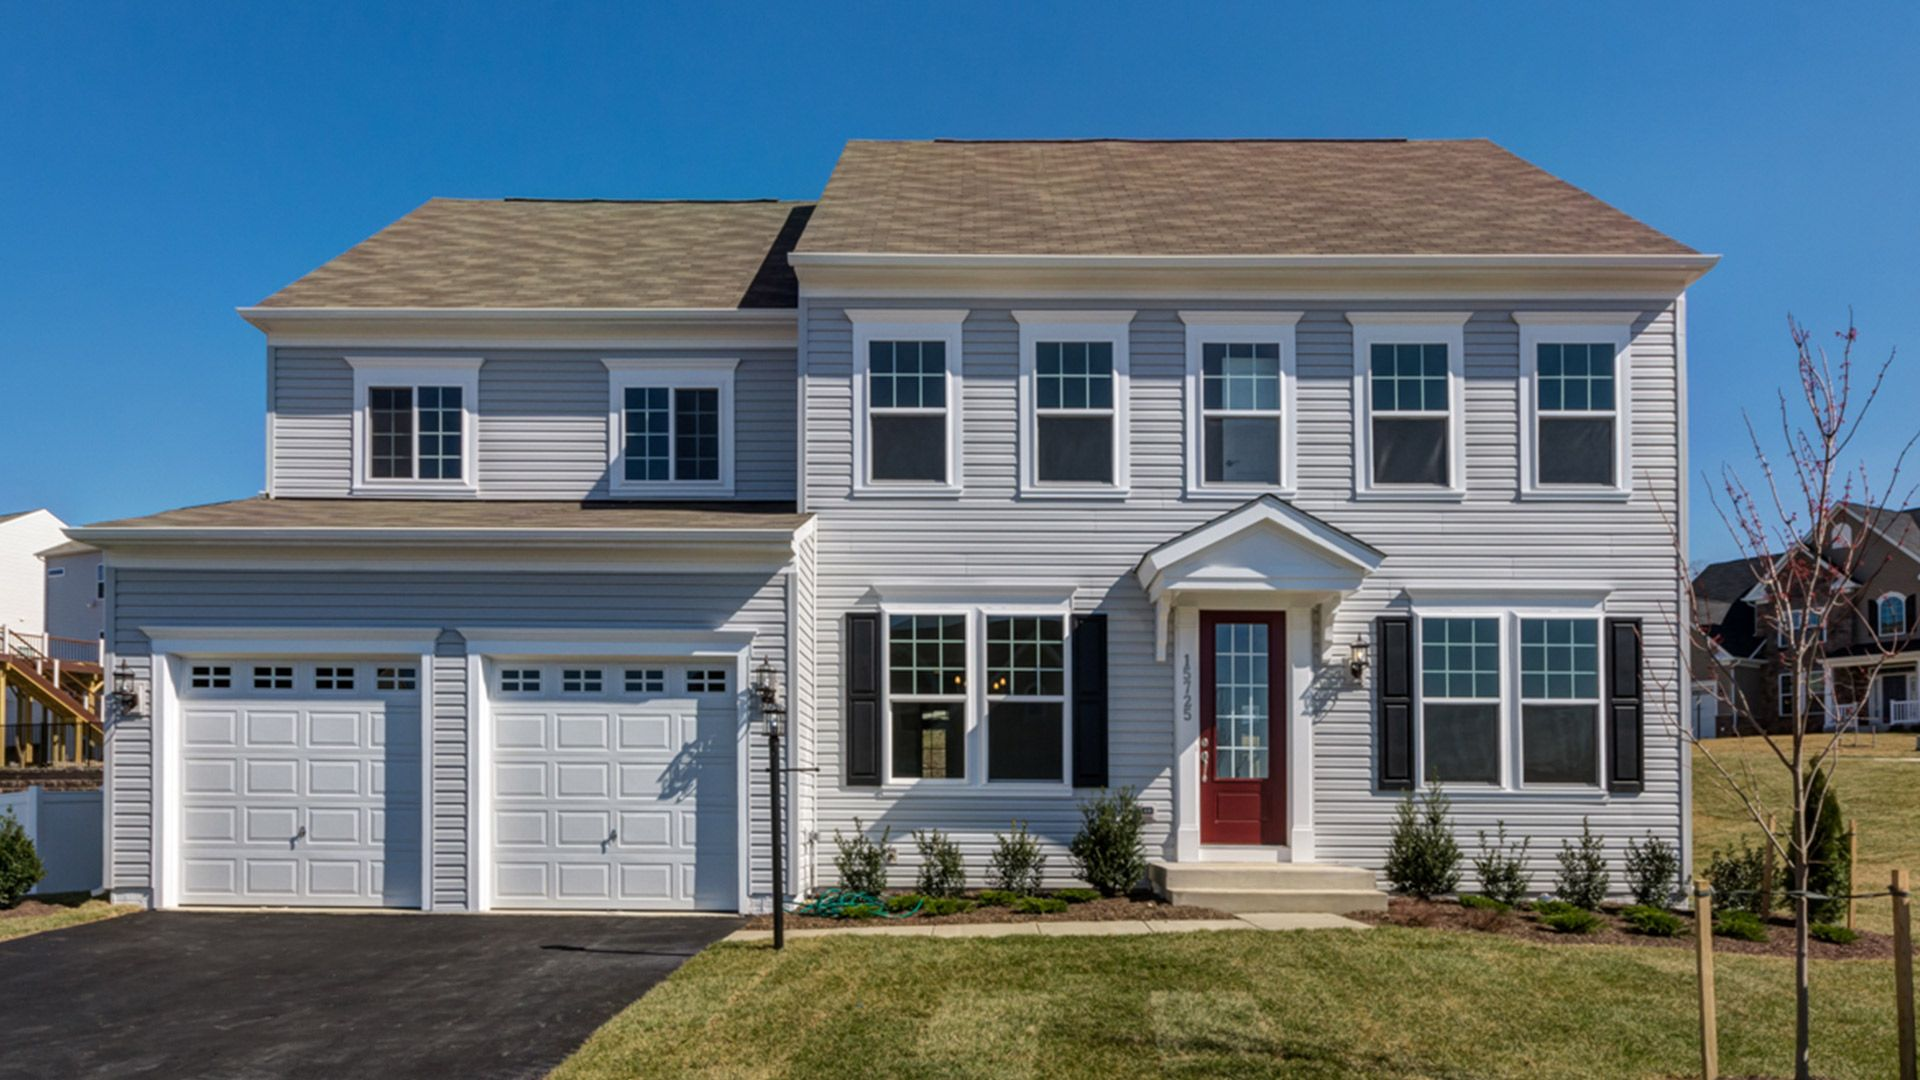 Real Estate at 15725 Birdsong Court, Woodbridge in Prince William County, VA 22193